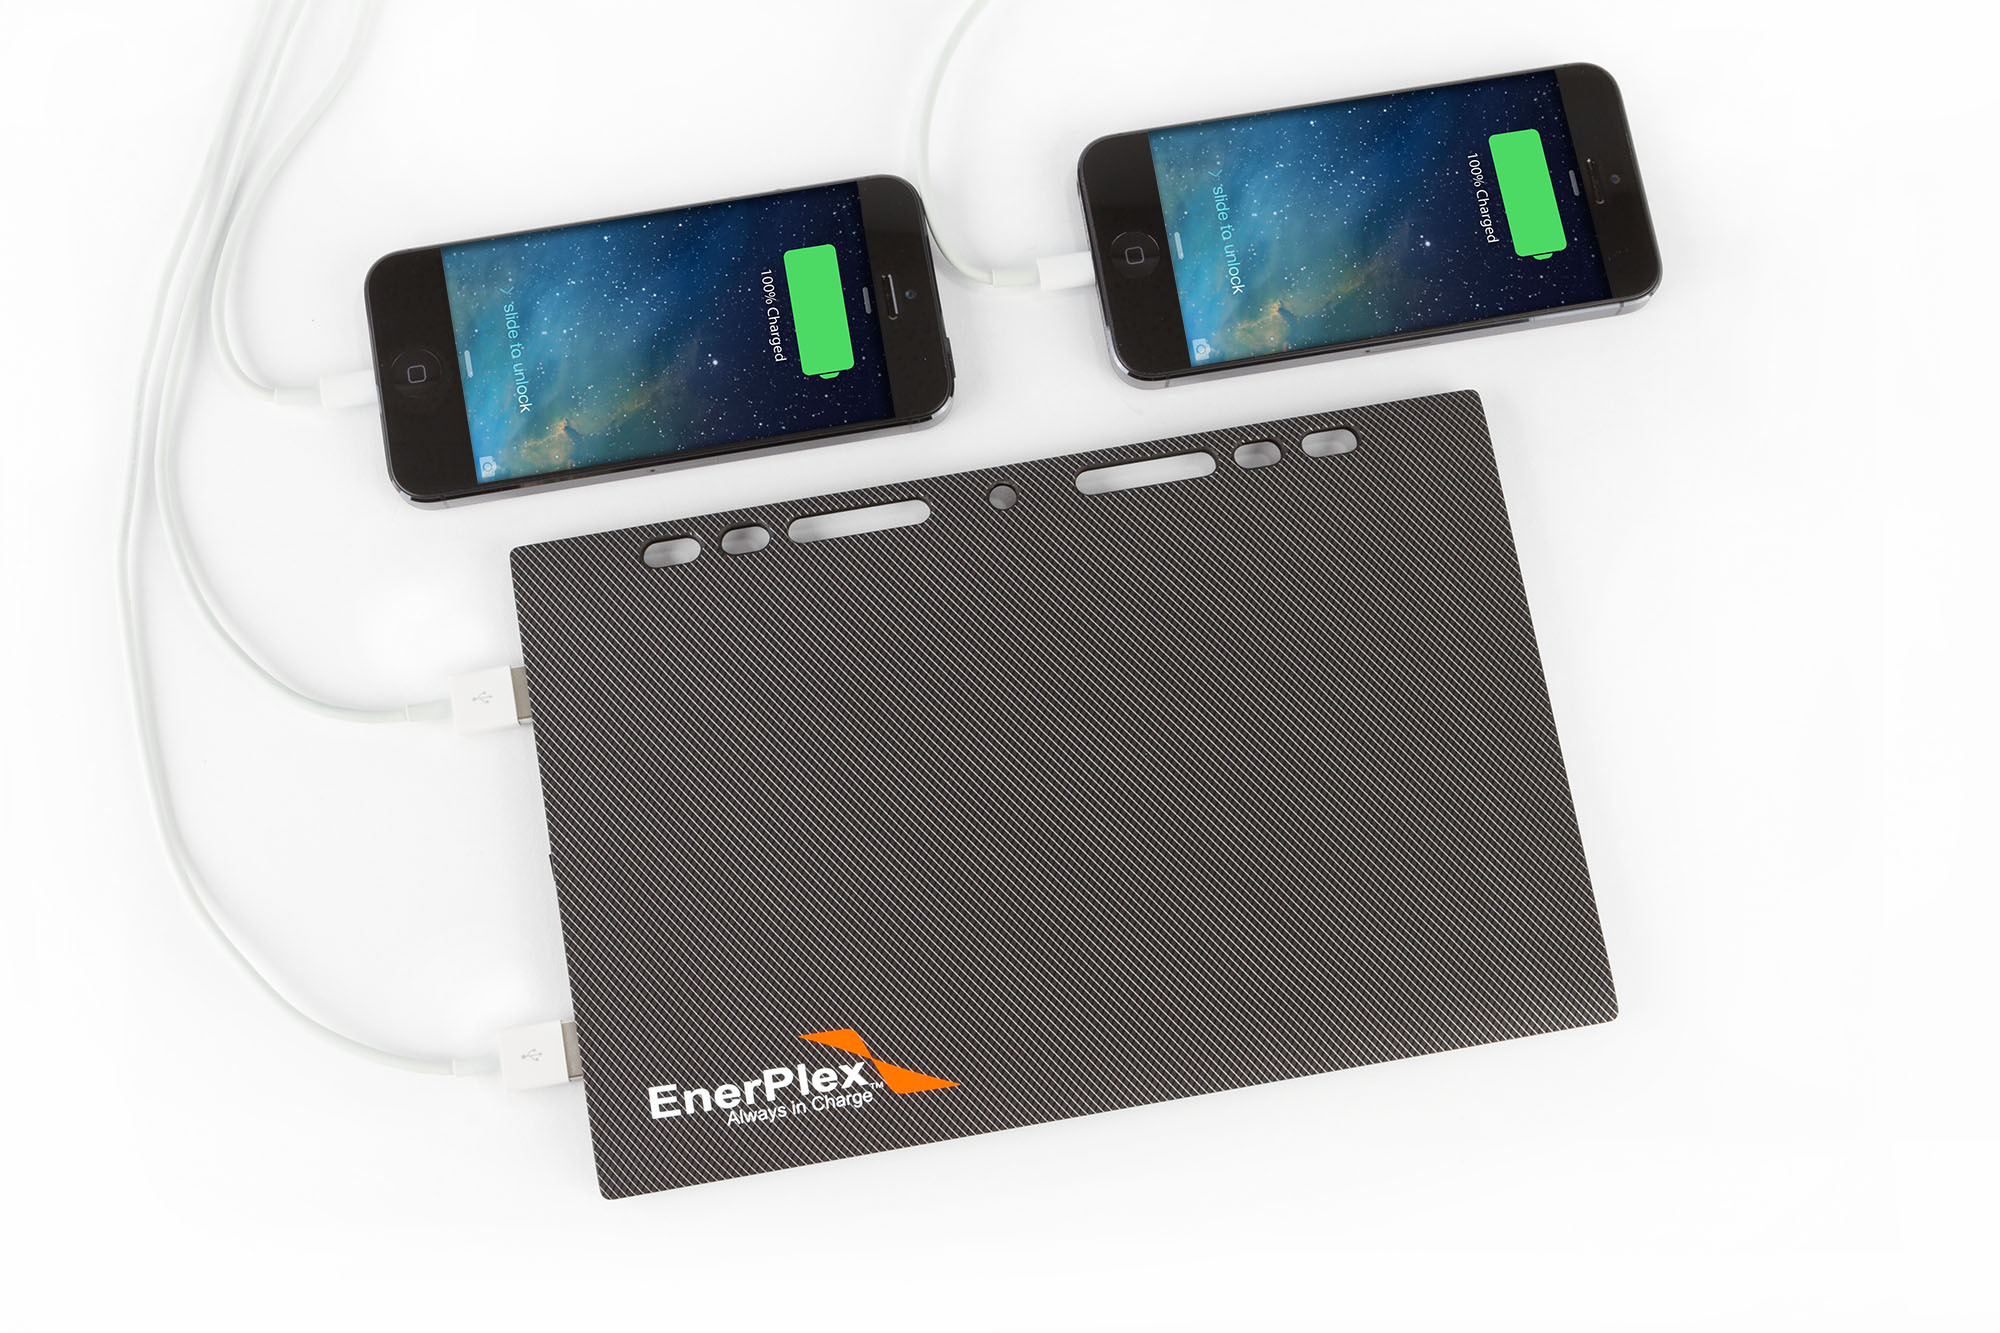 The Jumpr Slate 10k has dual 2.4amp USB outputs (Photo: Business Wire)